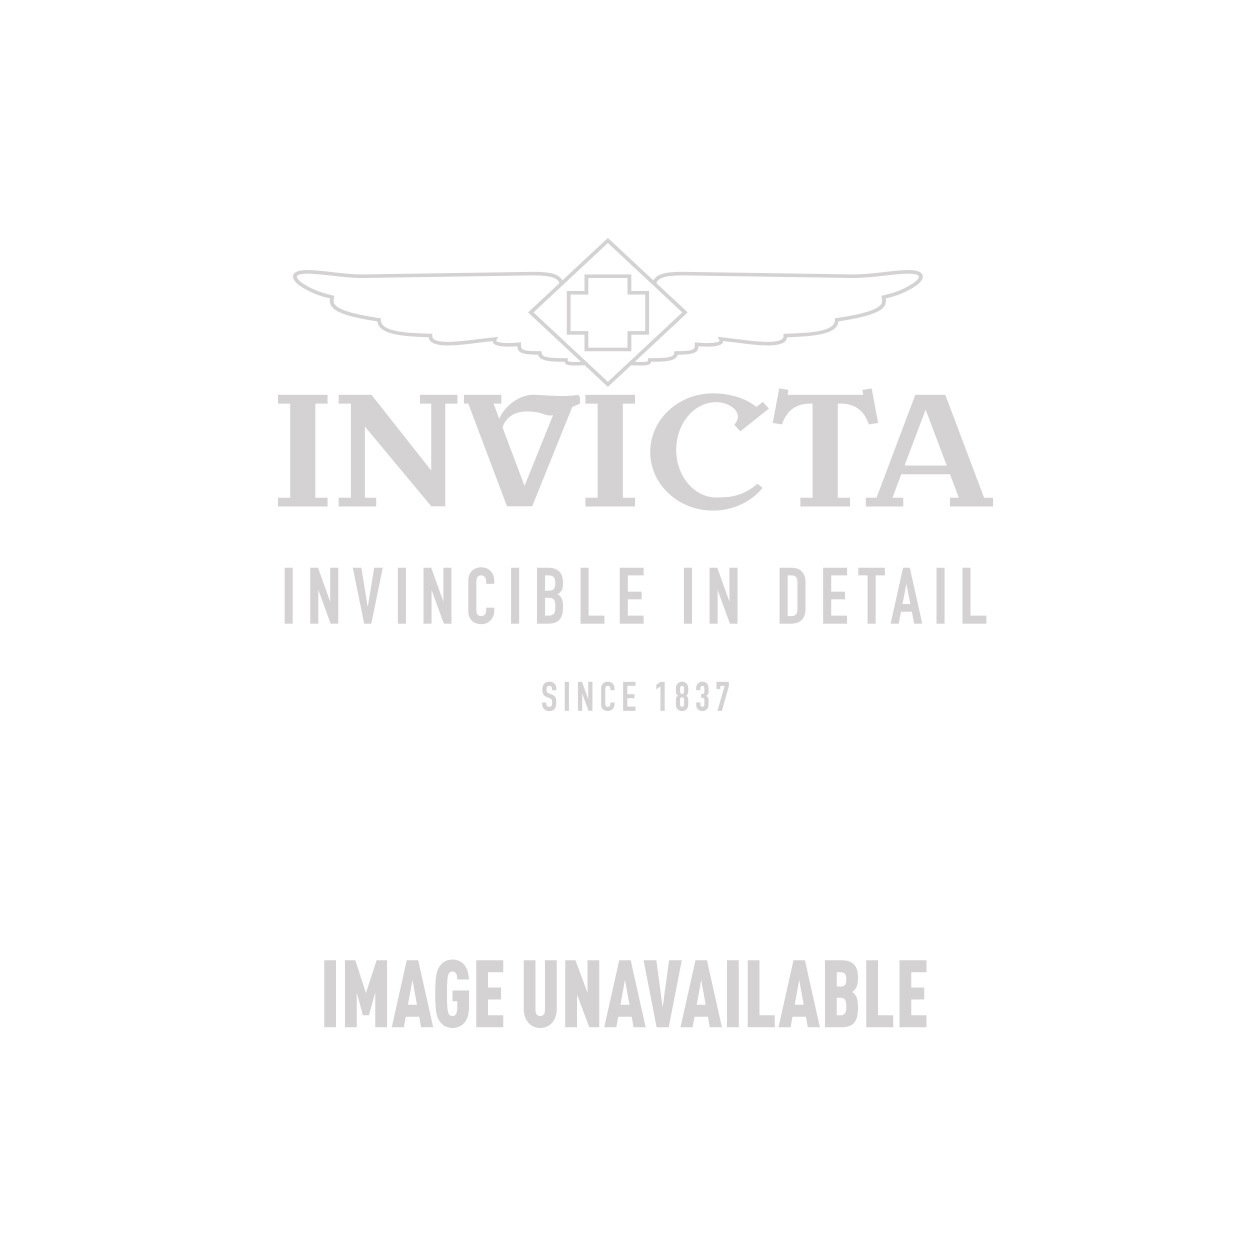 Invicta Subaqua Swiss Made Quartz Watch - Gold case with Gold tone Stainless Steel band - Model 17626